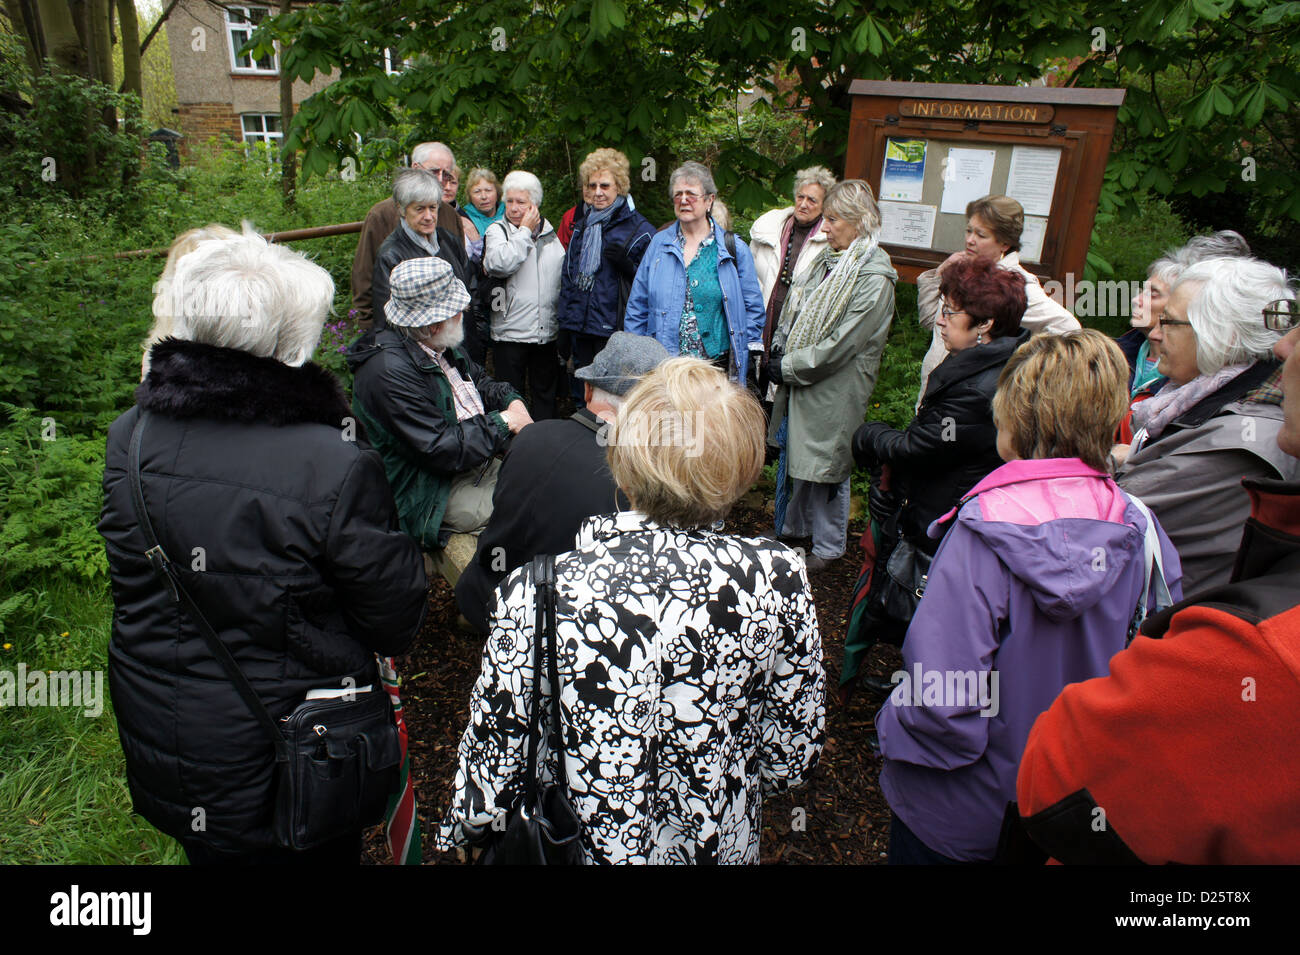 Members of a University of The Third Age group in Kingsthorpe pocket park, Northampton, UK - Stock Image